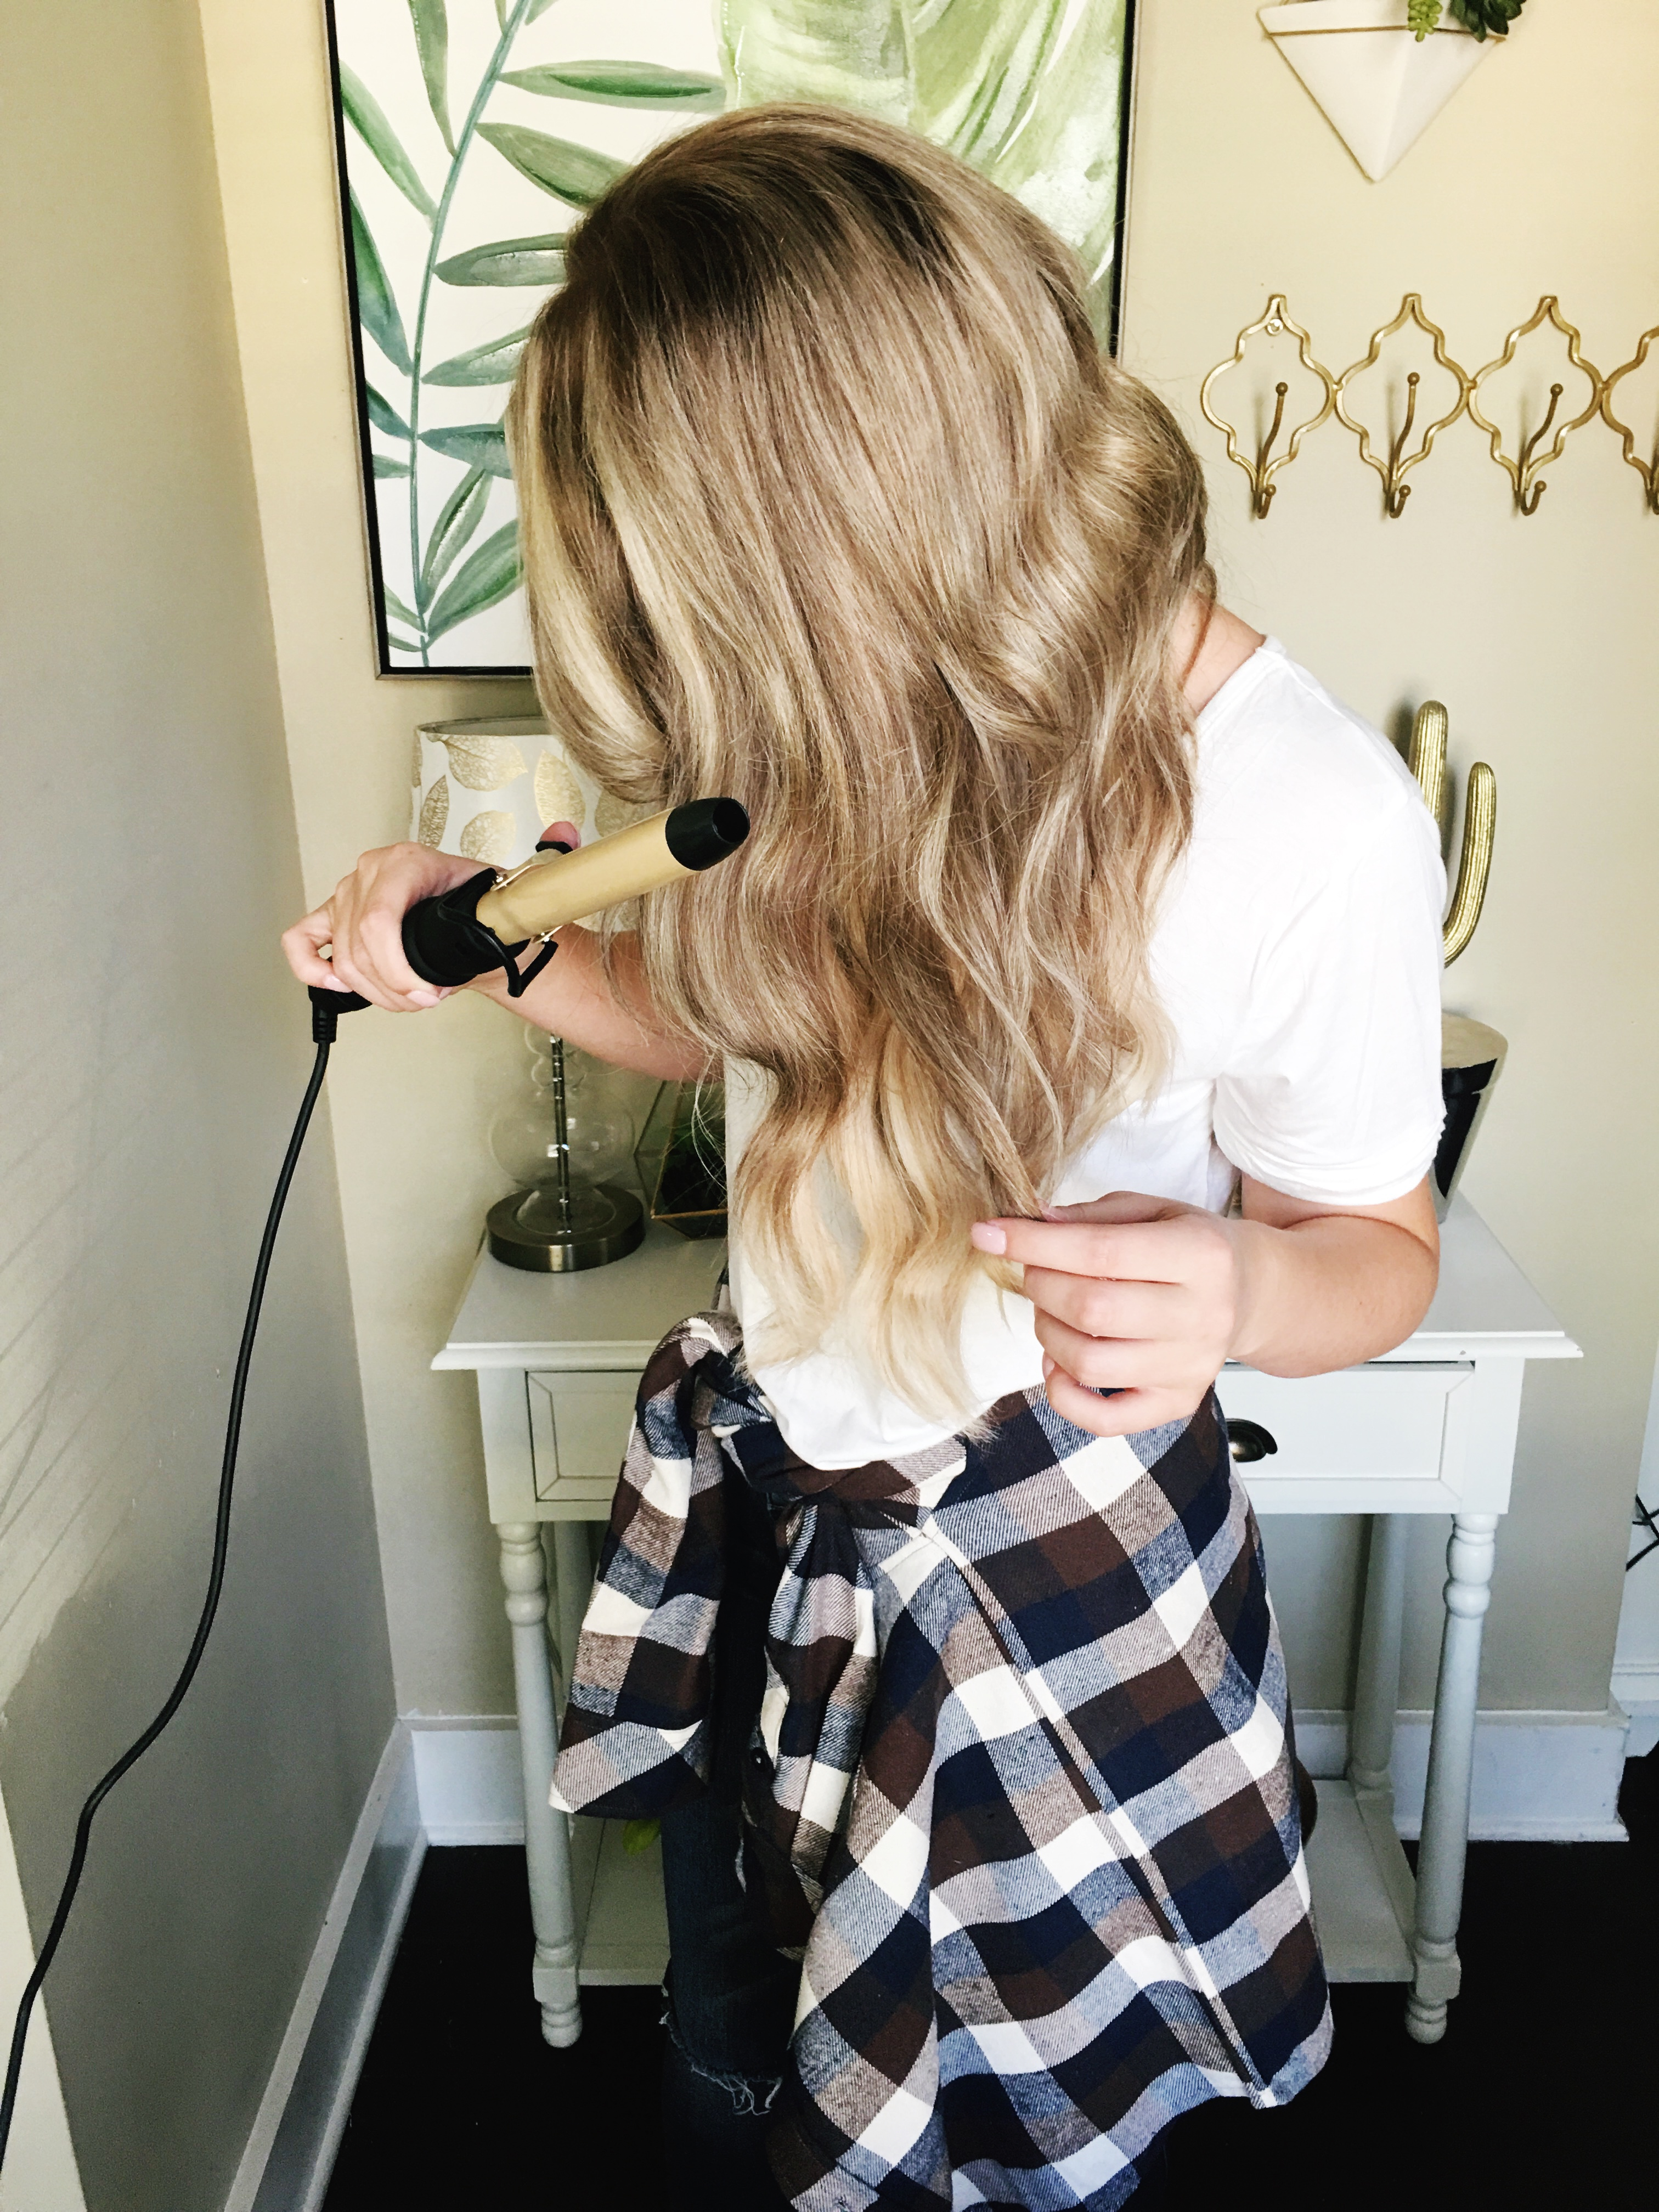 Instagram Roundup | Bio Ionic Gold Curling Wand | Audrey Madison Stowe a fashion and lifestyle blogger based in Texas